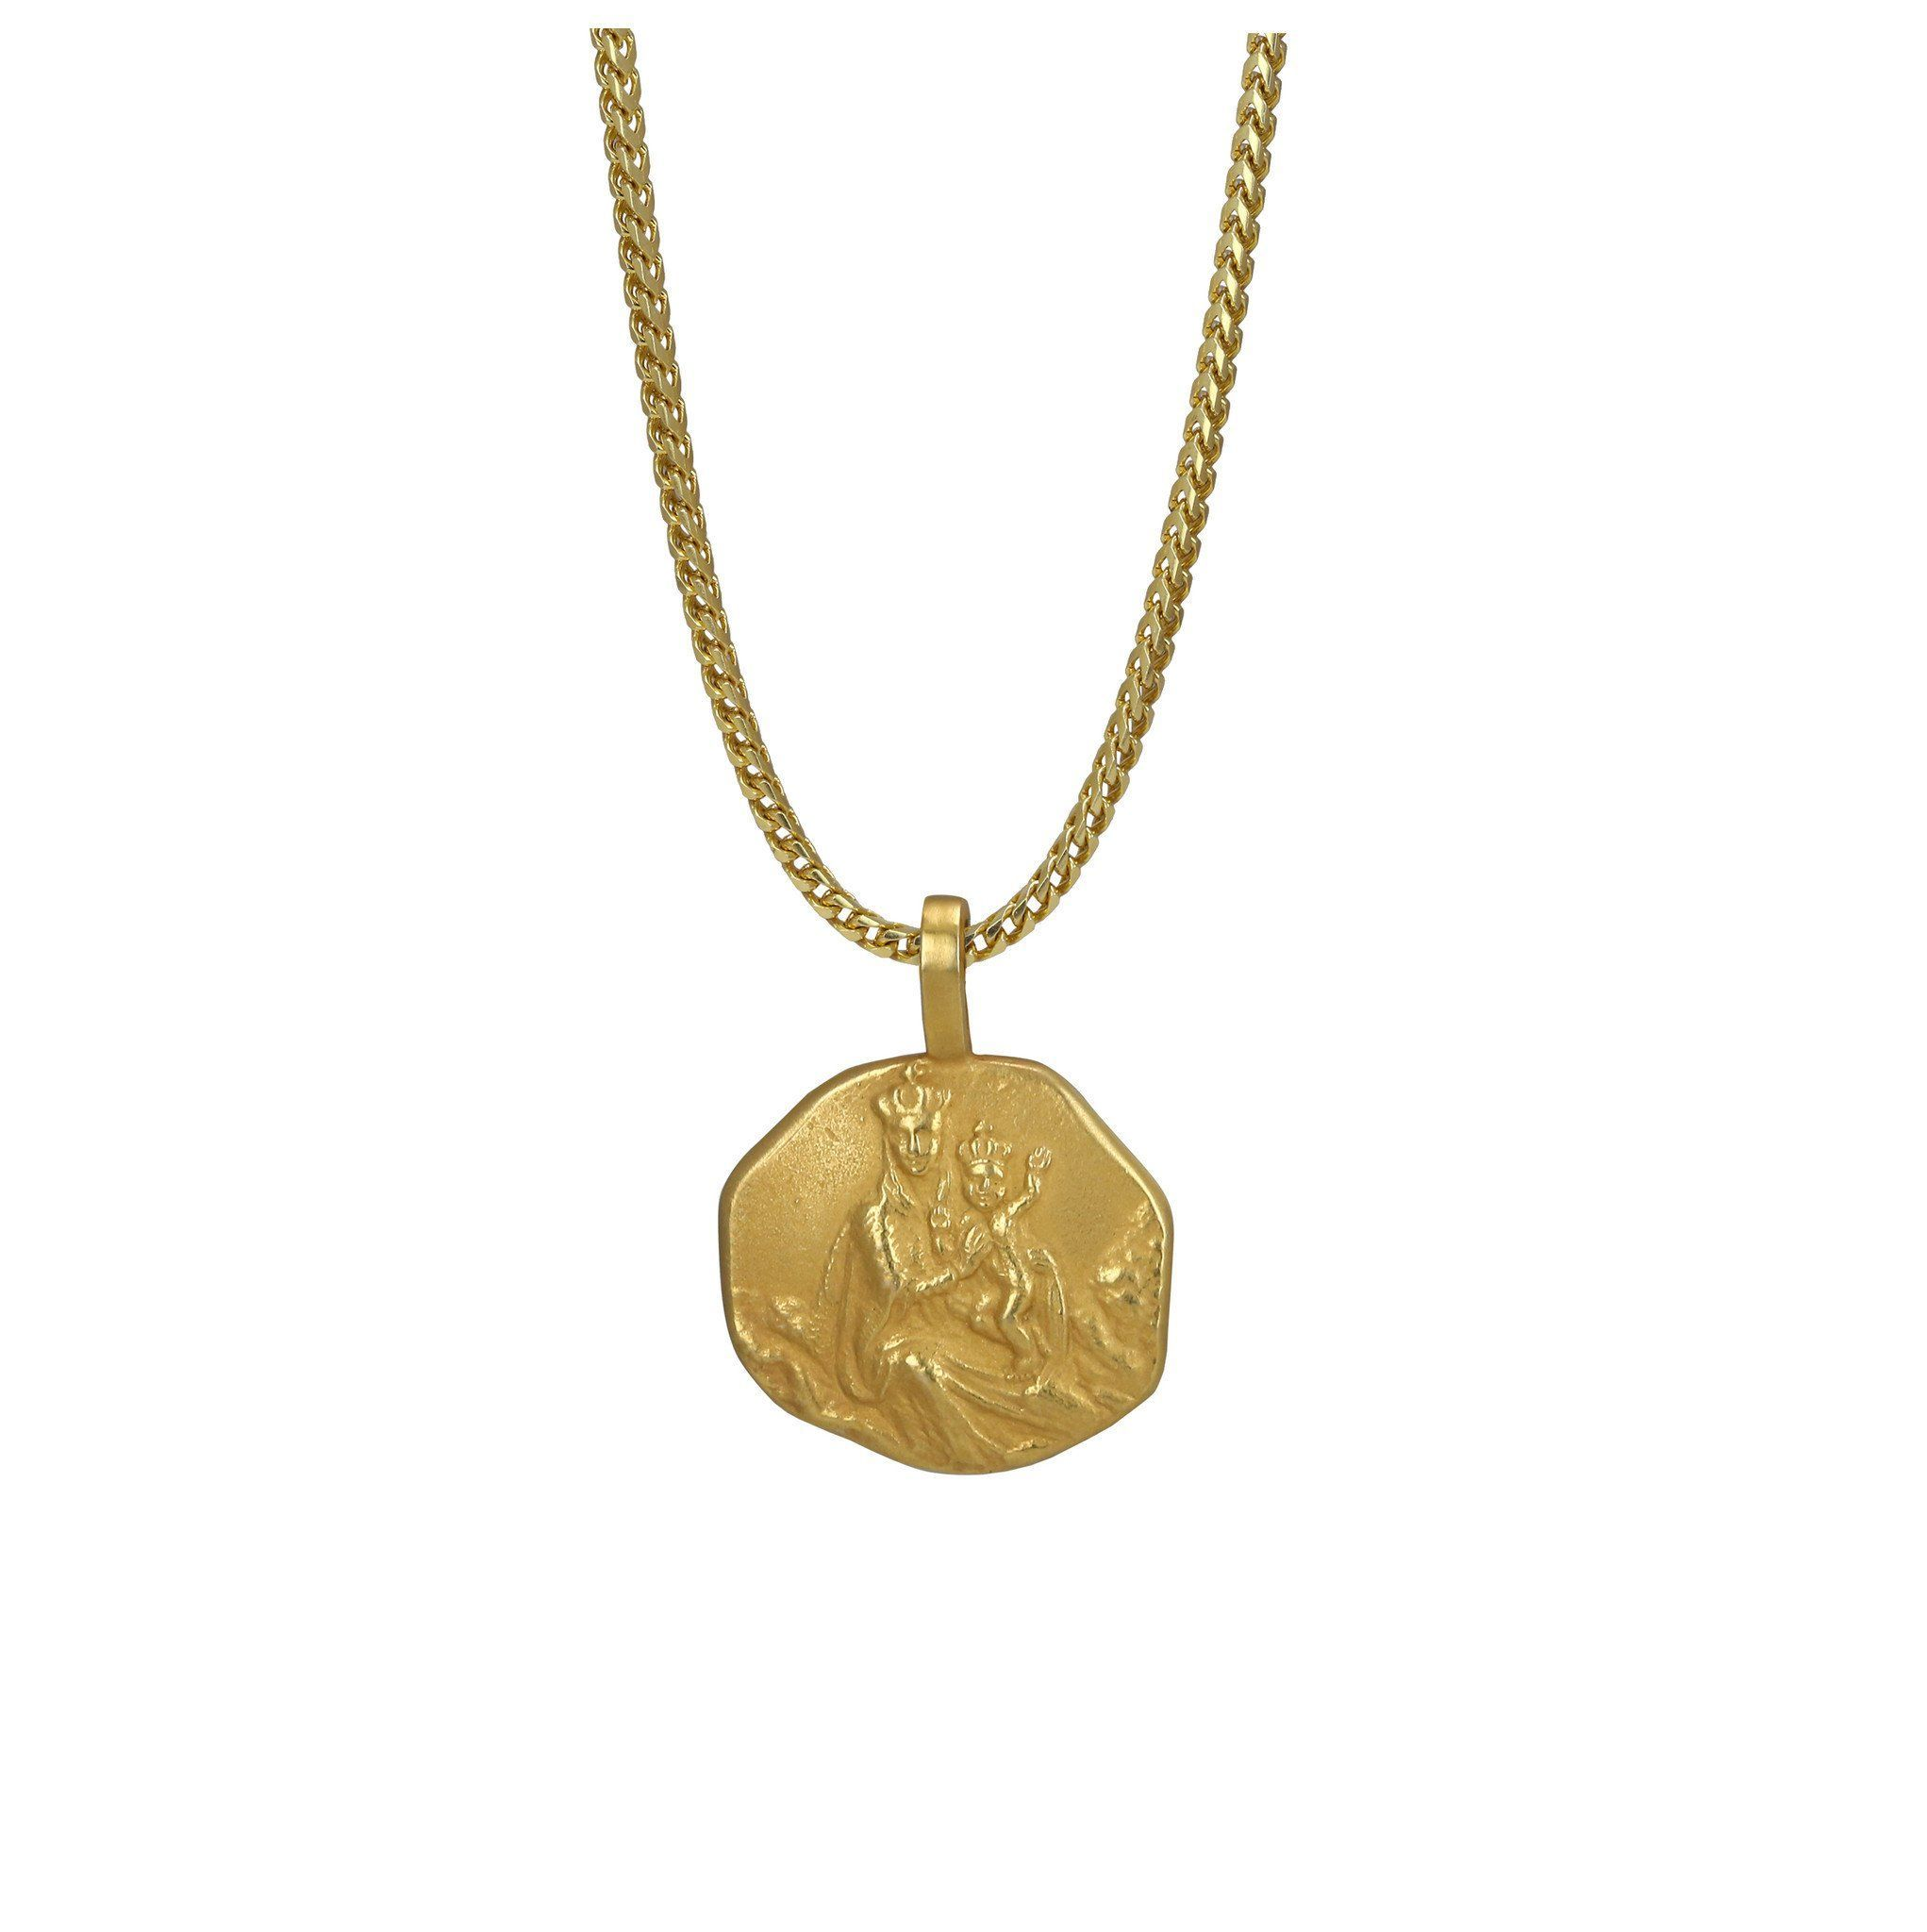 Kanye West S Jewelry Line Is Here 11k Pendants All Forever Jewelry Jewelry Jewelry Blog